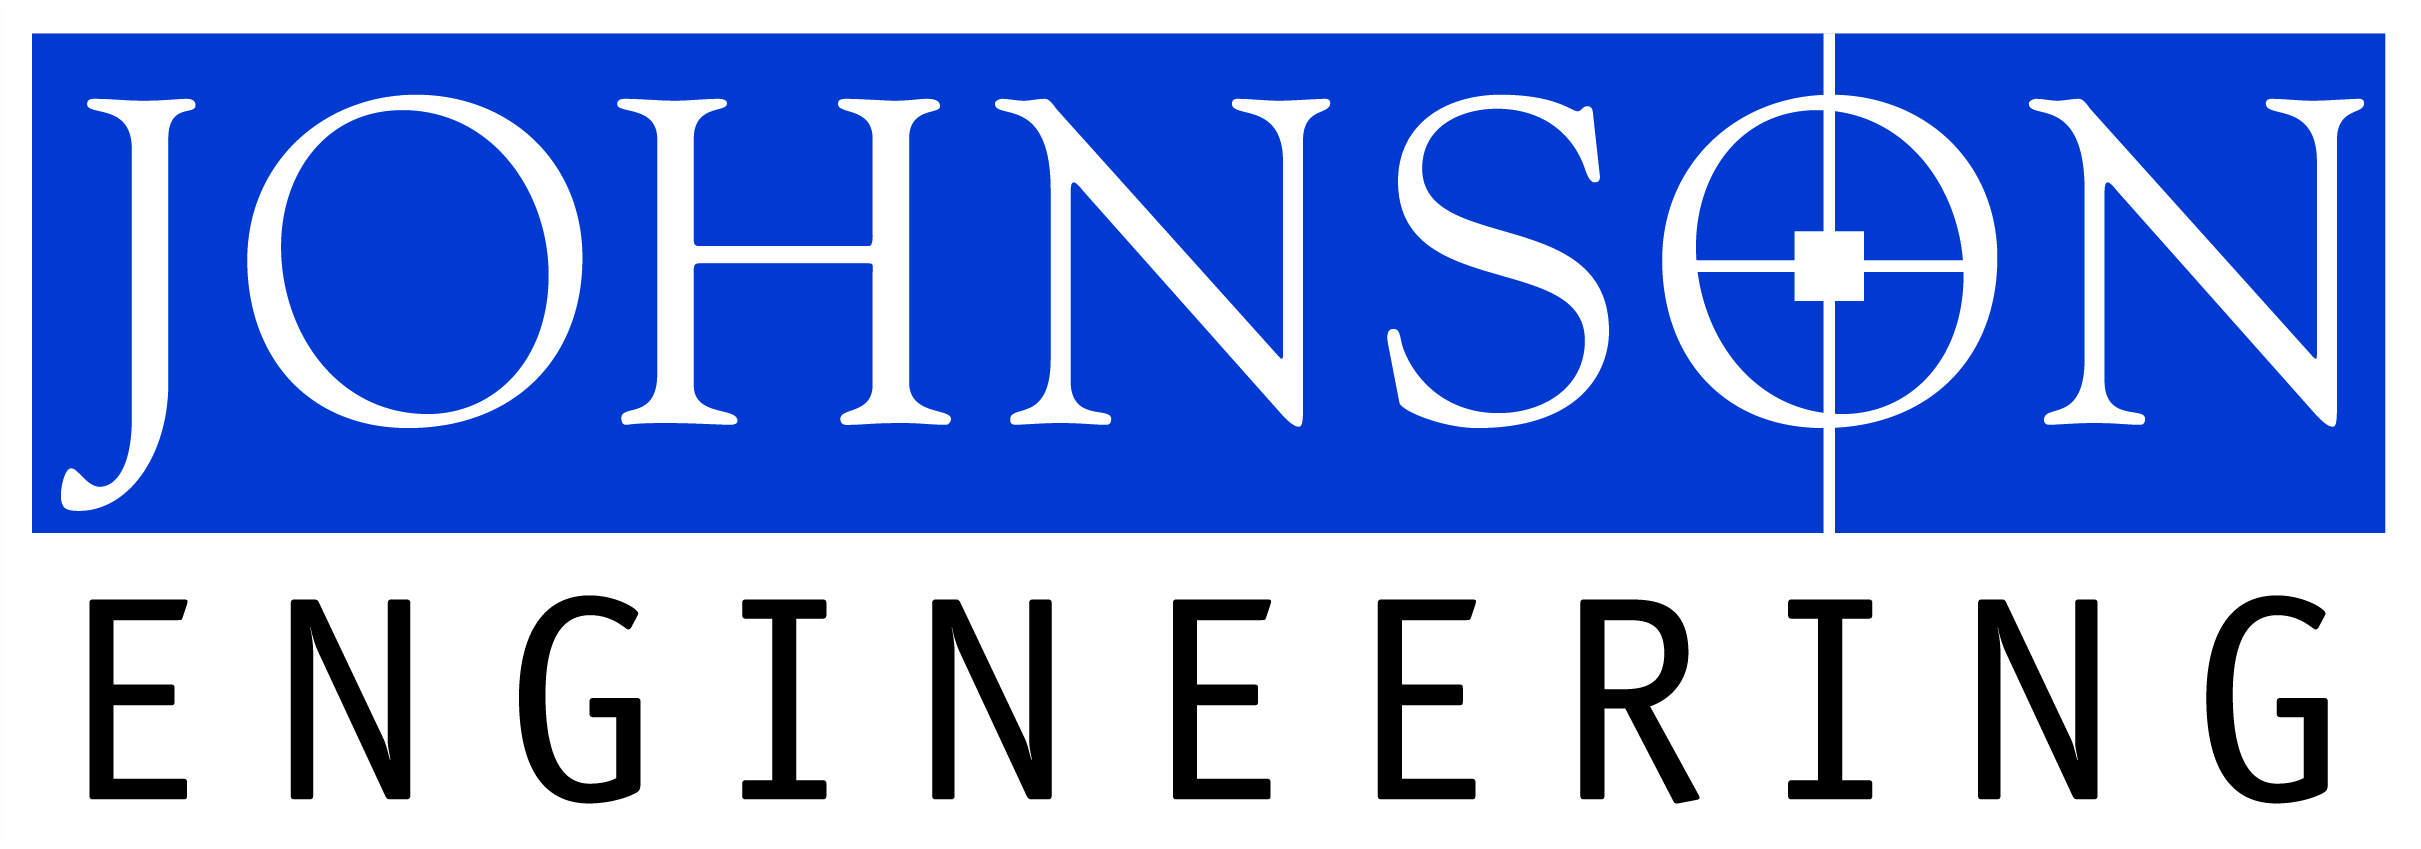 Hole Sponsors - Johnson Engineering - Logo